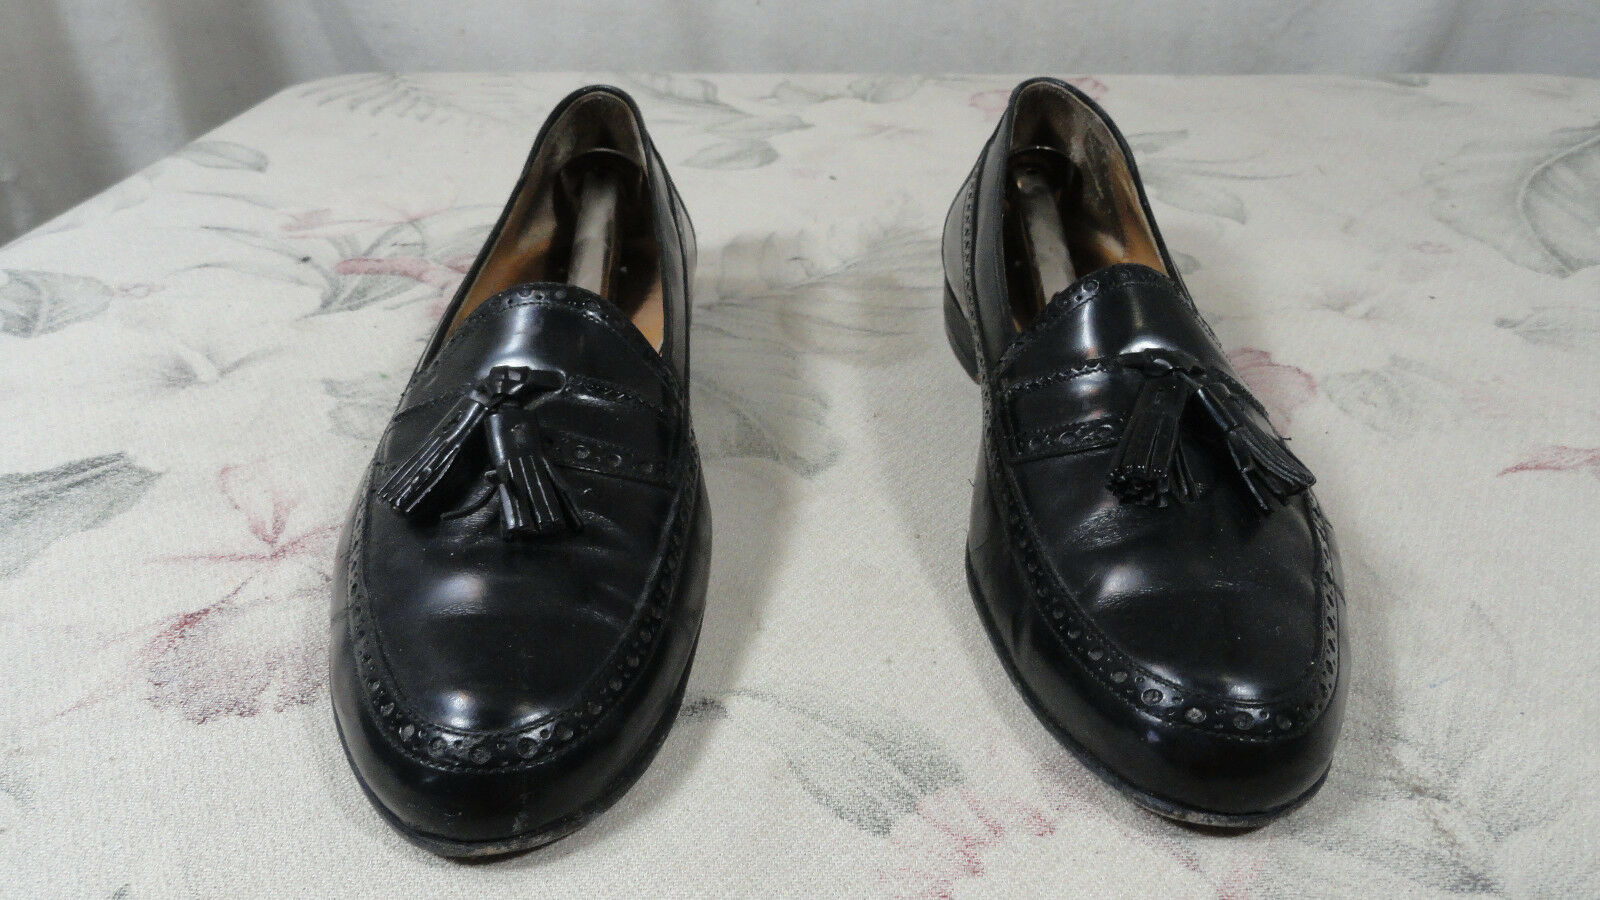 BALLY DAVID USED 9.5 D MEDIUM WIDE schwarz TASSEL LOAFER schuhe